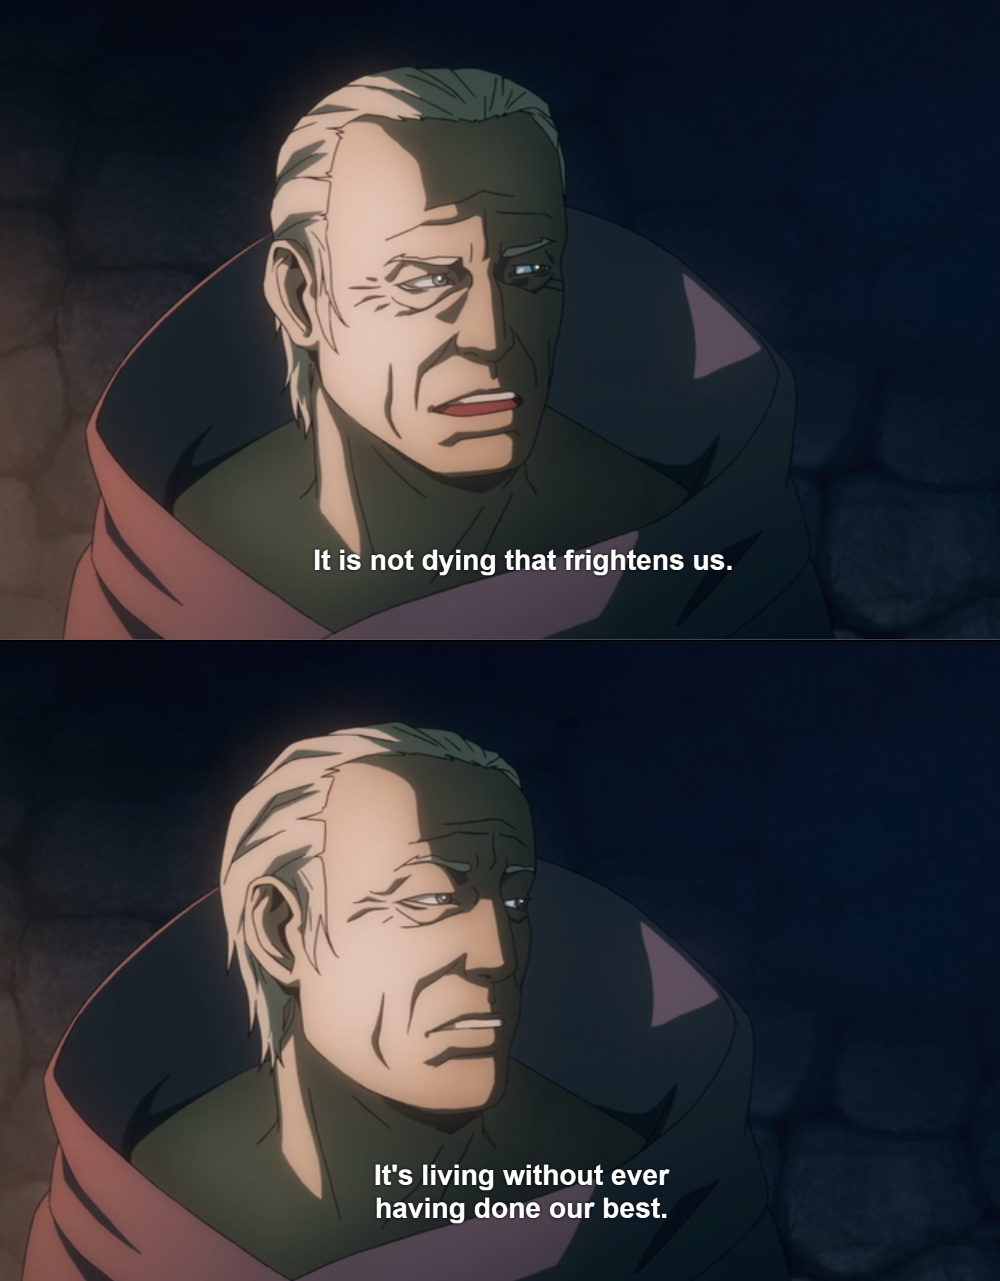 [Image] This line from the Netflix Castlevania show stuck with me